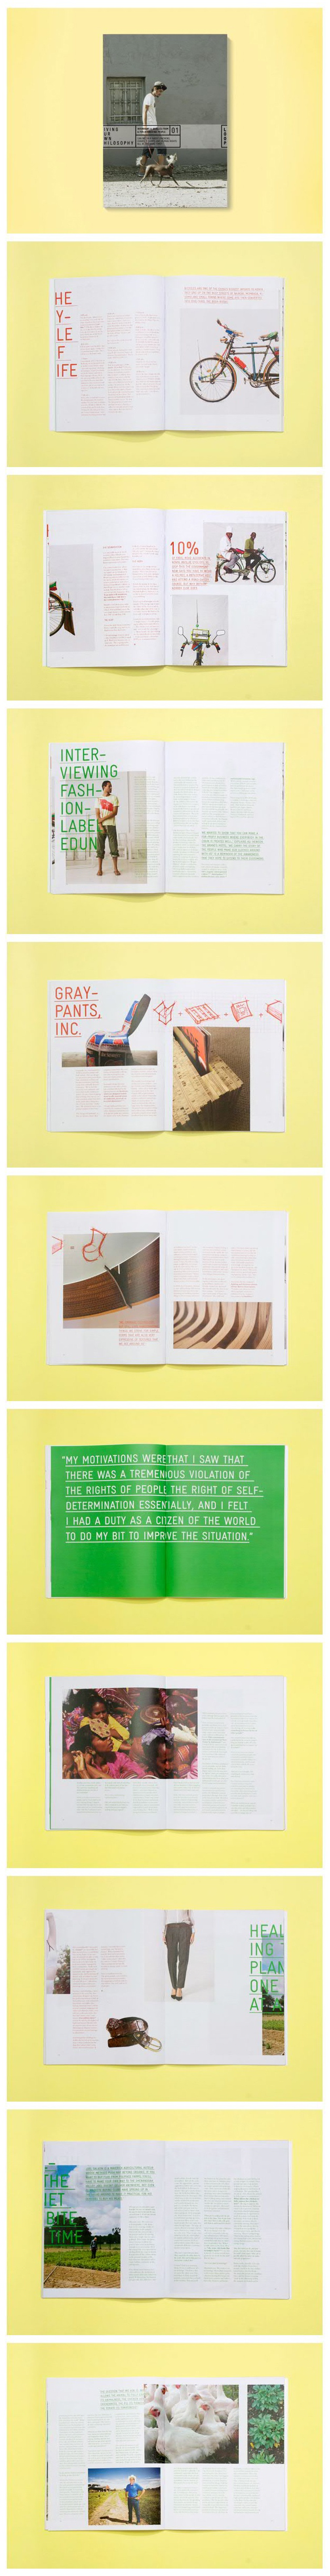 Loop Magazine #design #layout